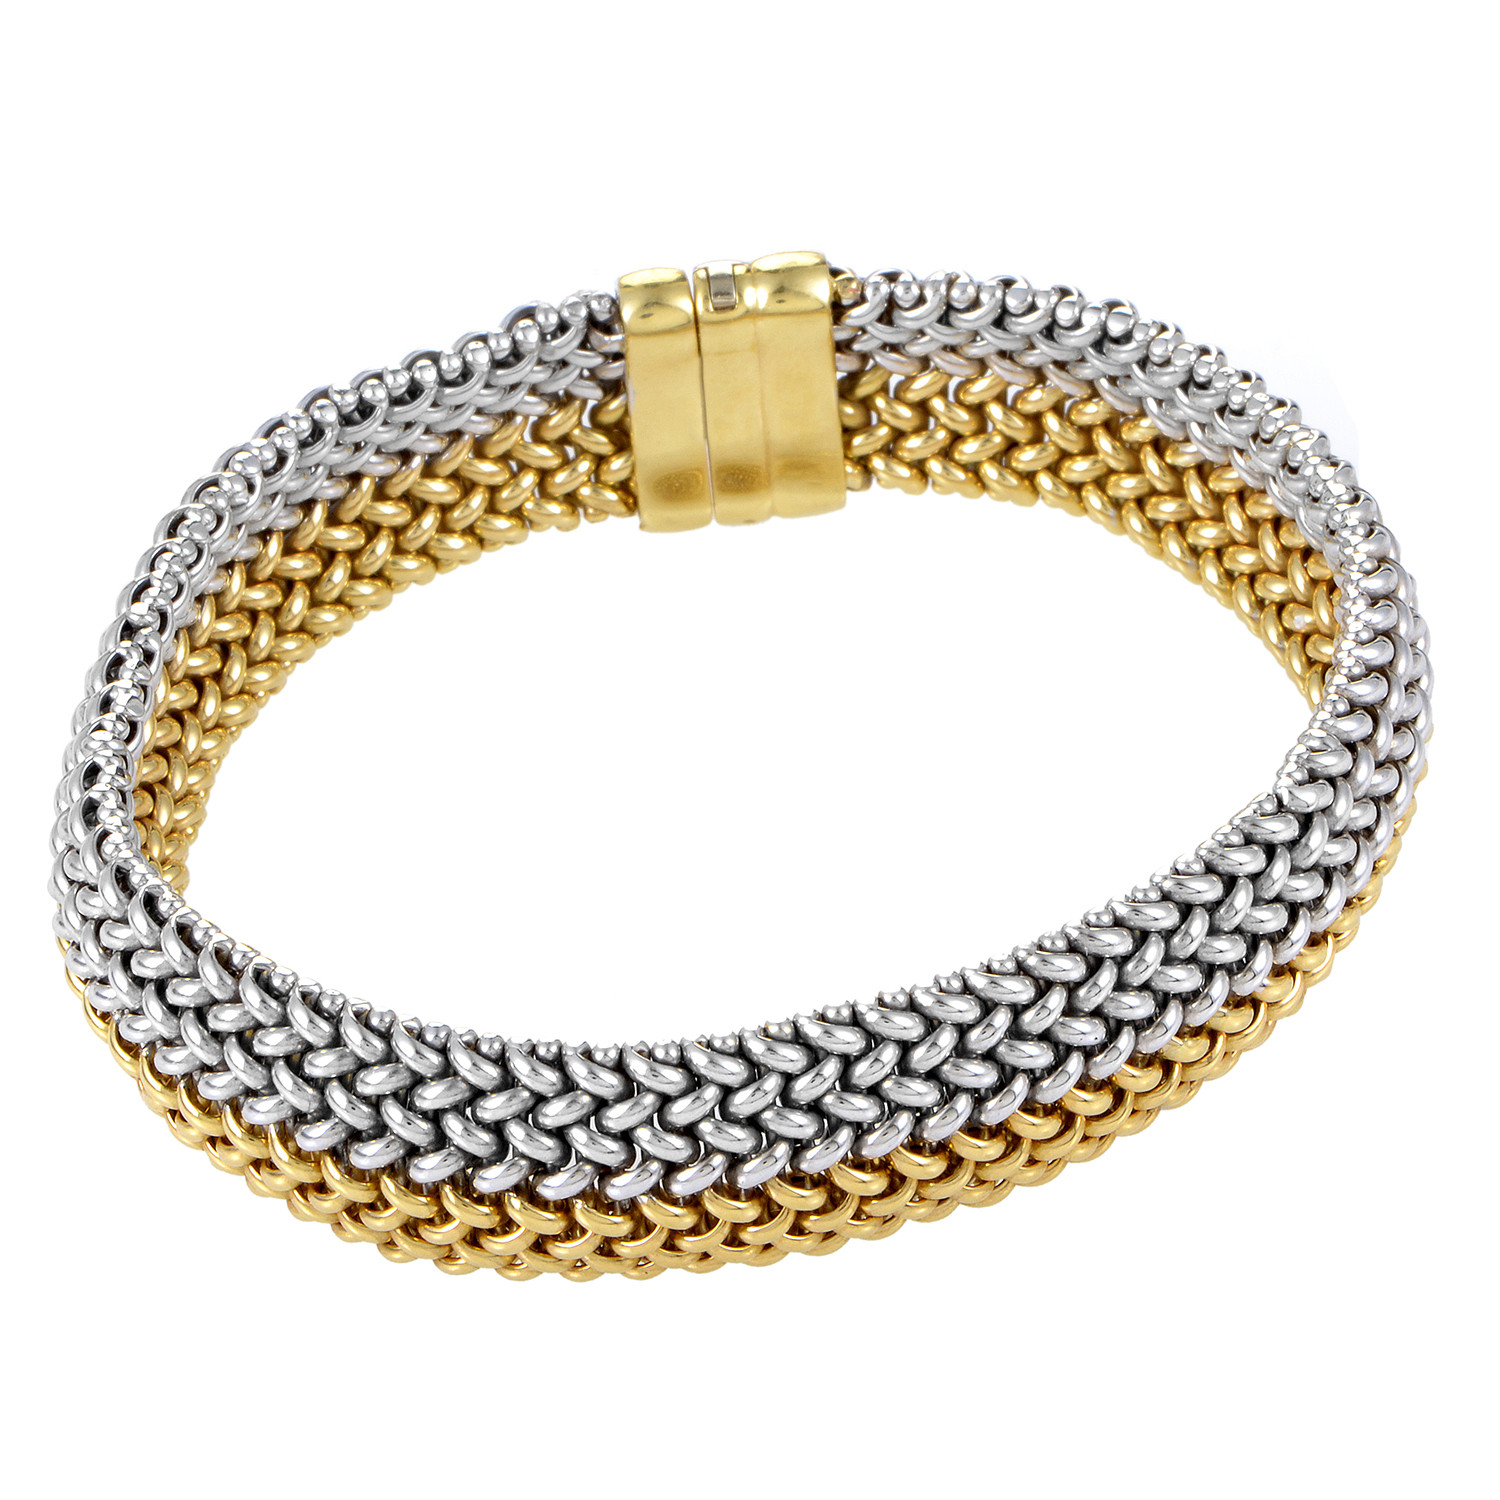 Women's 18K White & Yellow Gold Mesh Bracelet